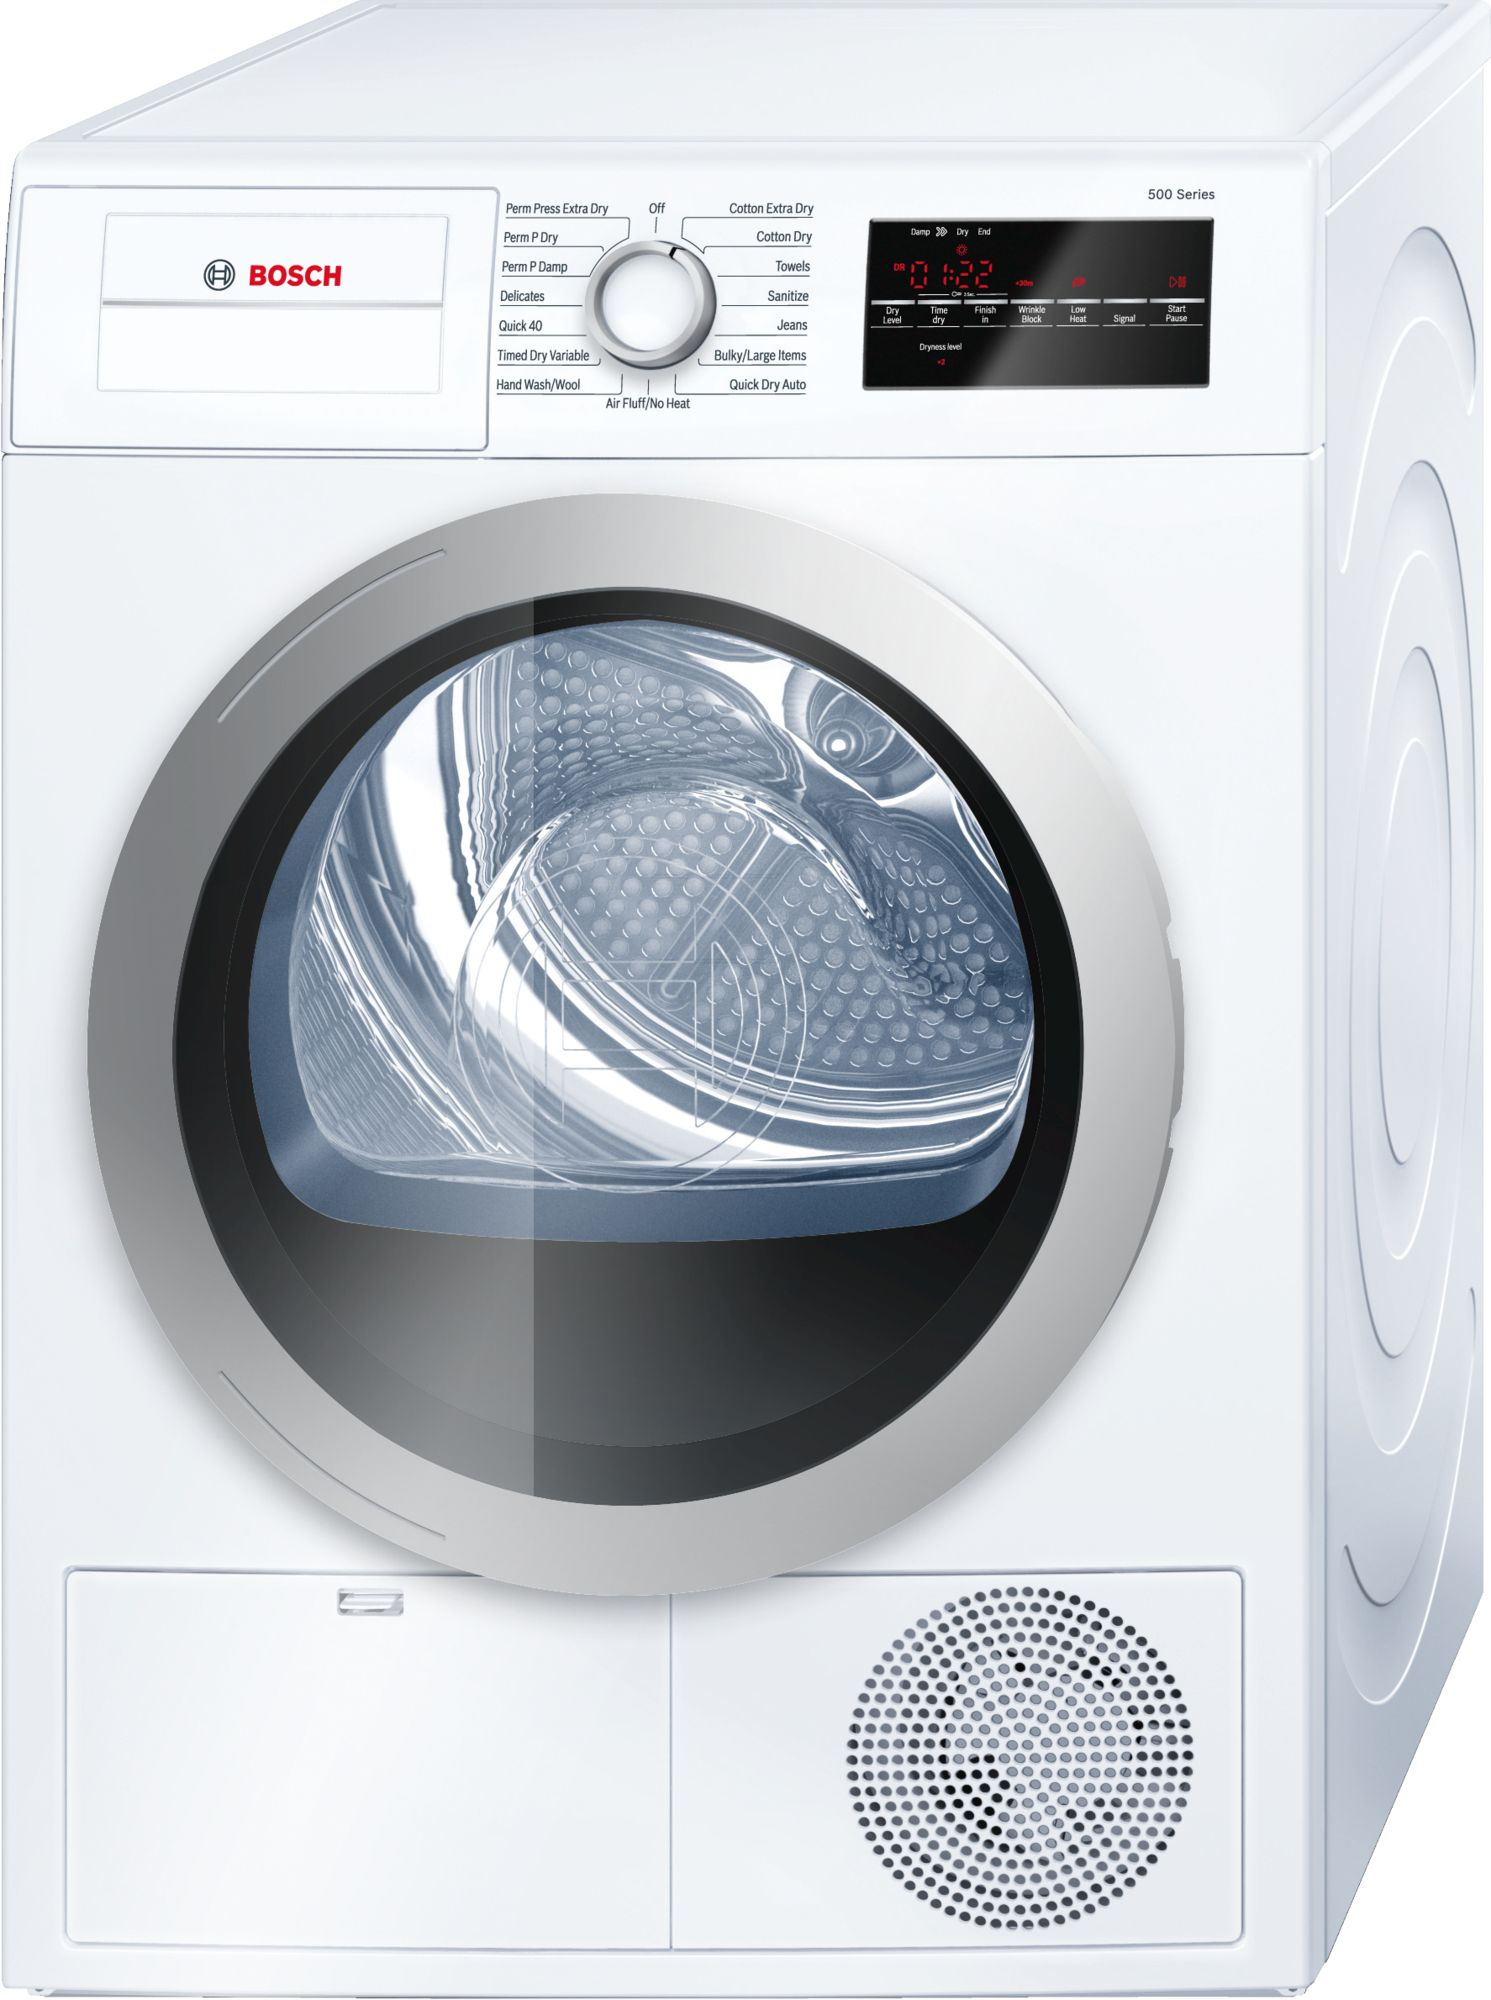 Dryers Nampa Idaho Together With Samsung Electric Clothes Dryer Additionally Maytag Bosch 500 Series Front Load White Wtg86401uc